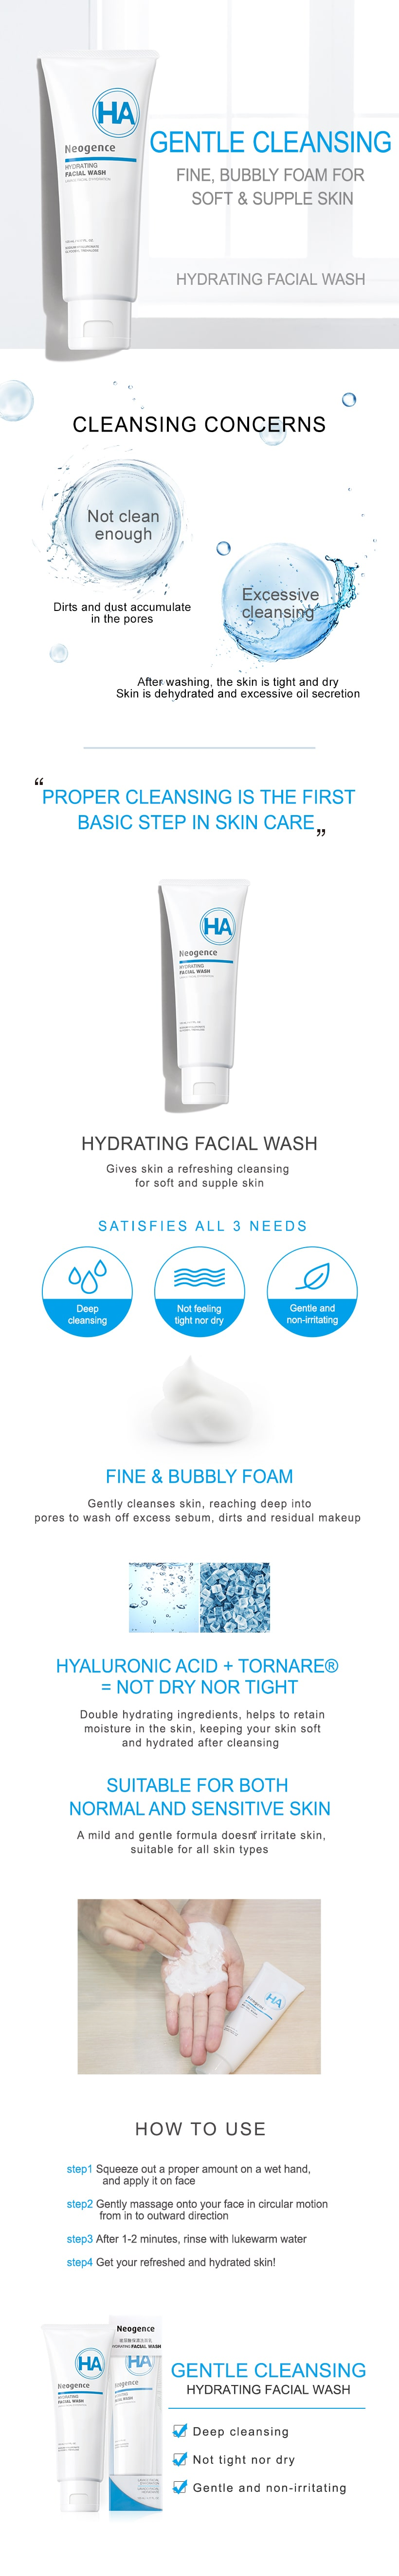 Neogence Hydrating Facial Wash - Features